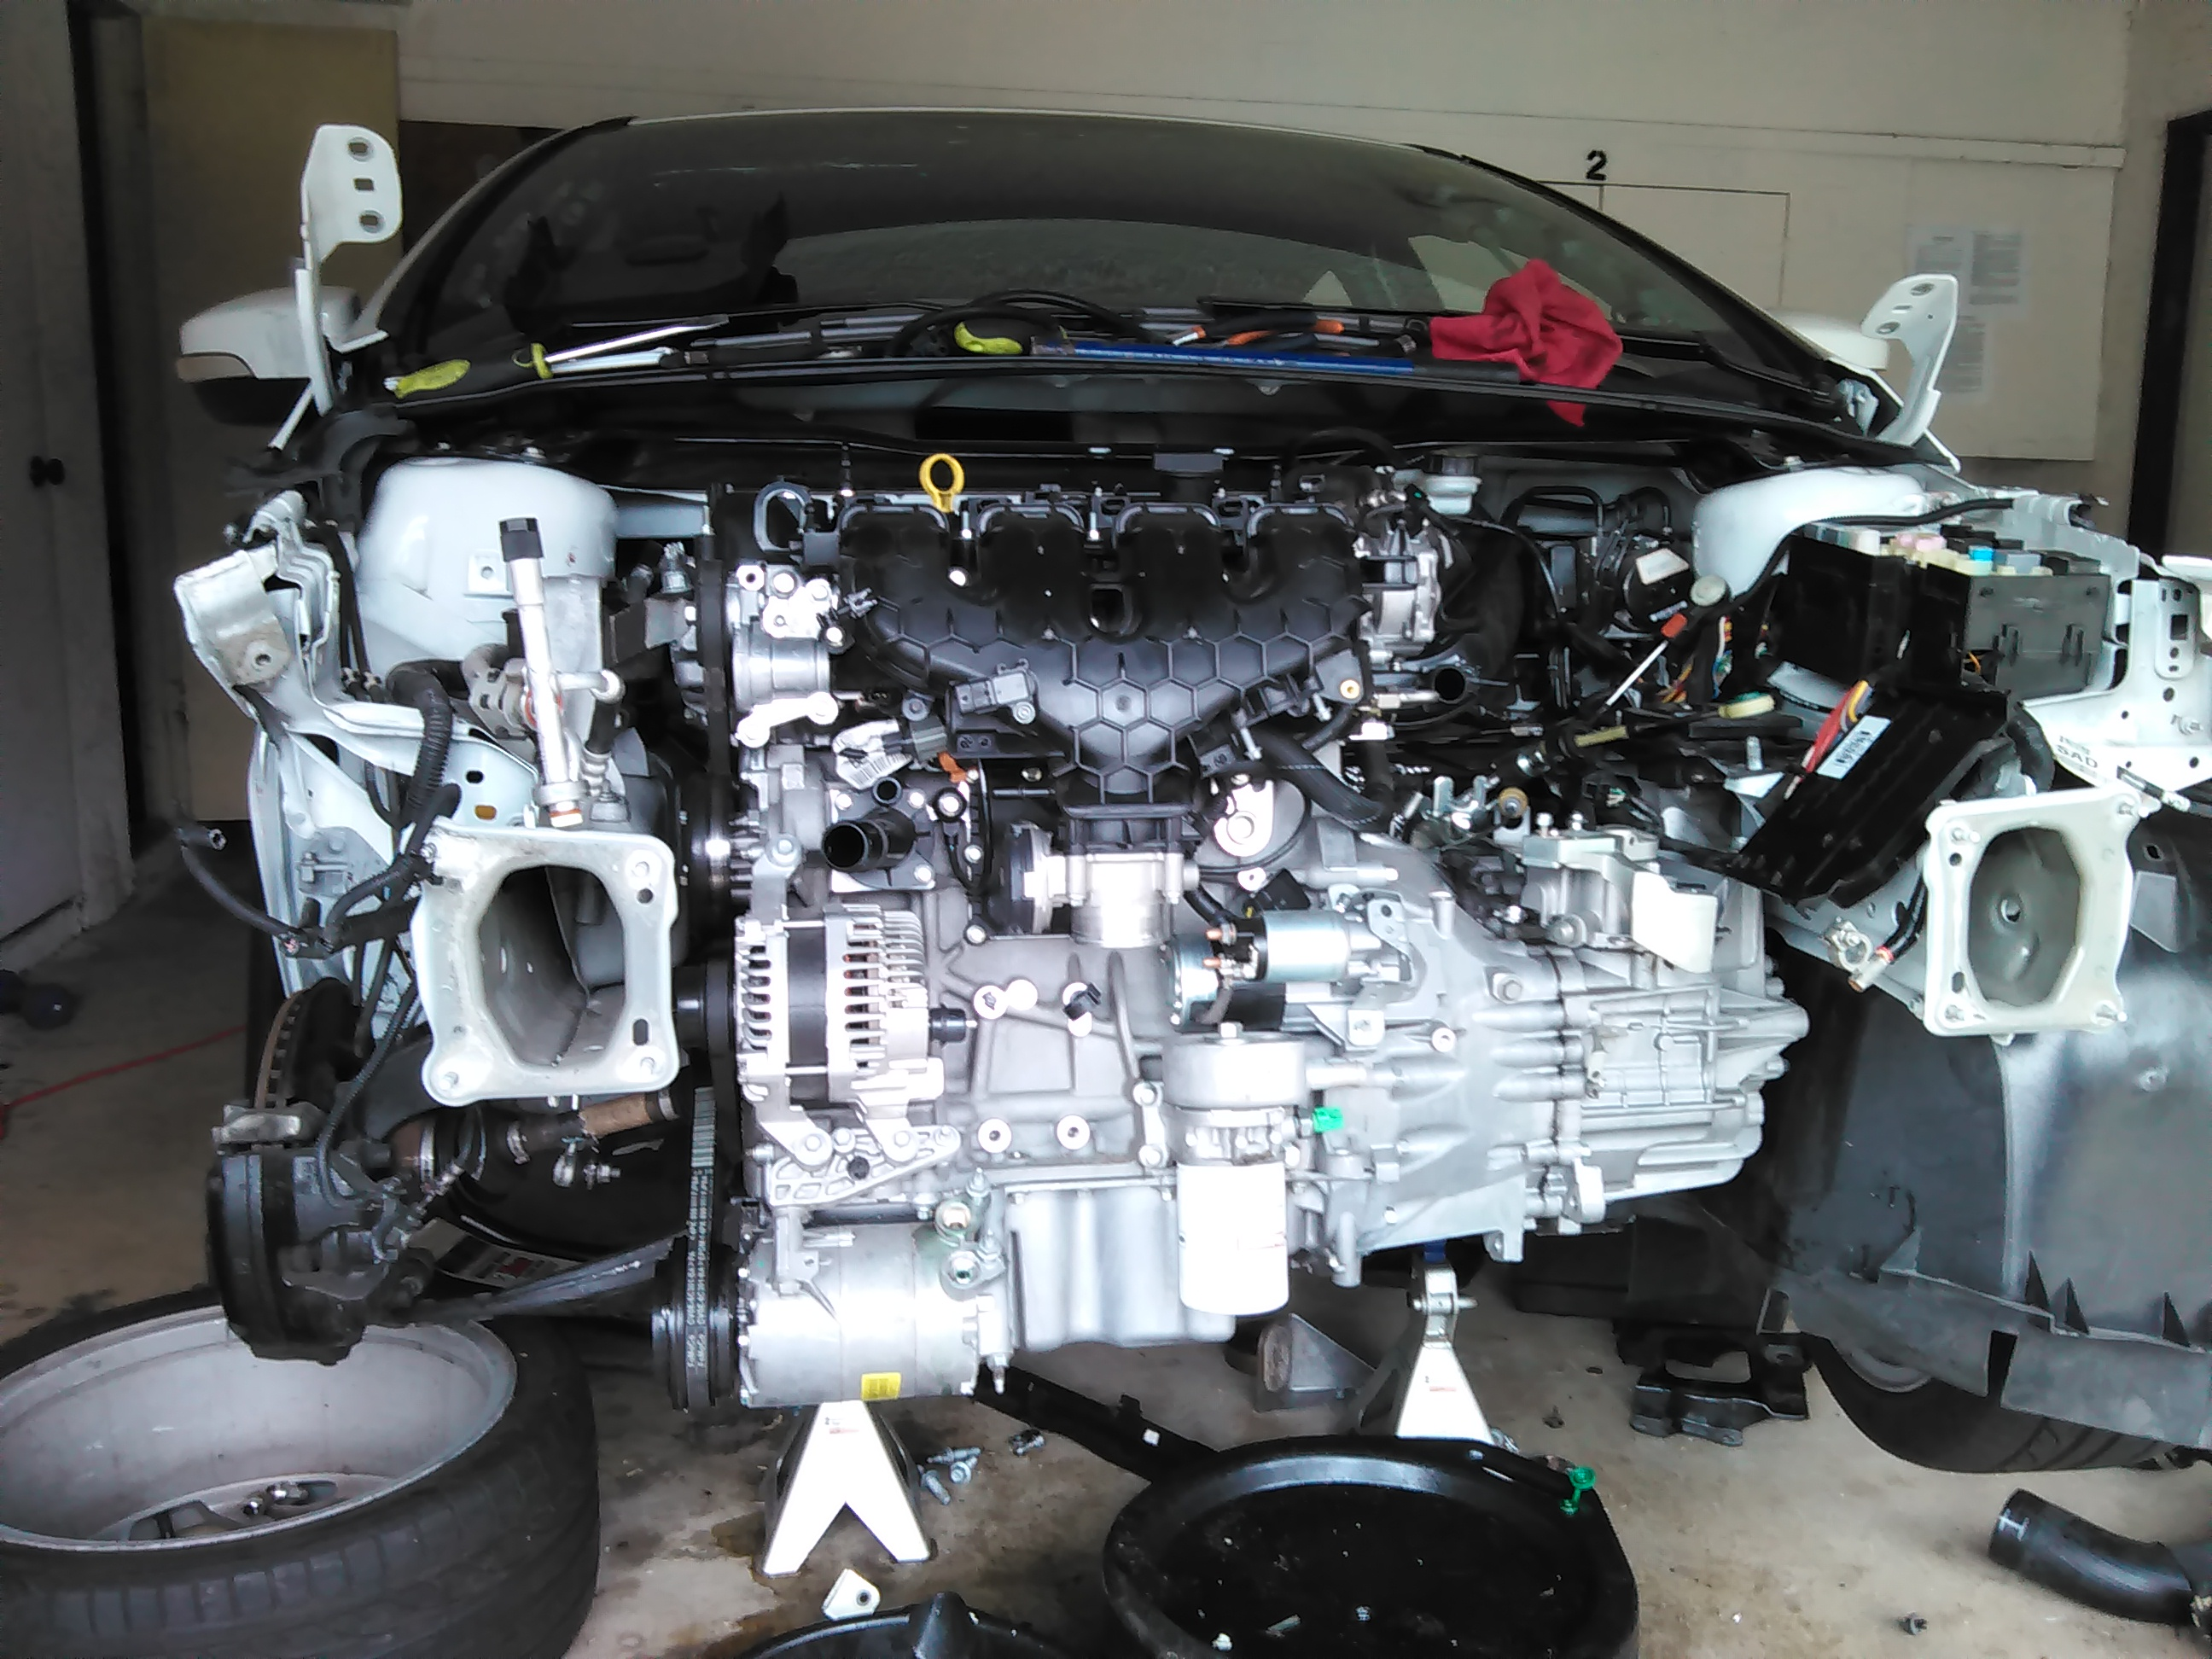 Do I need to clean the engine when replacing the oil